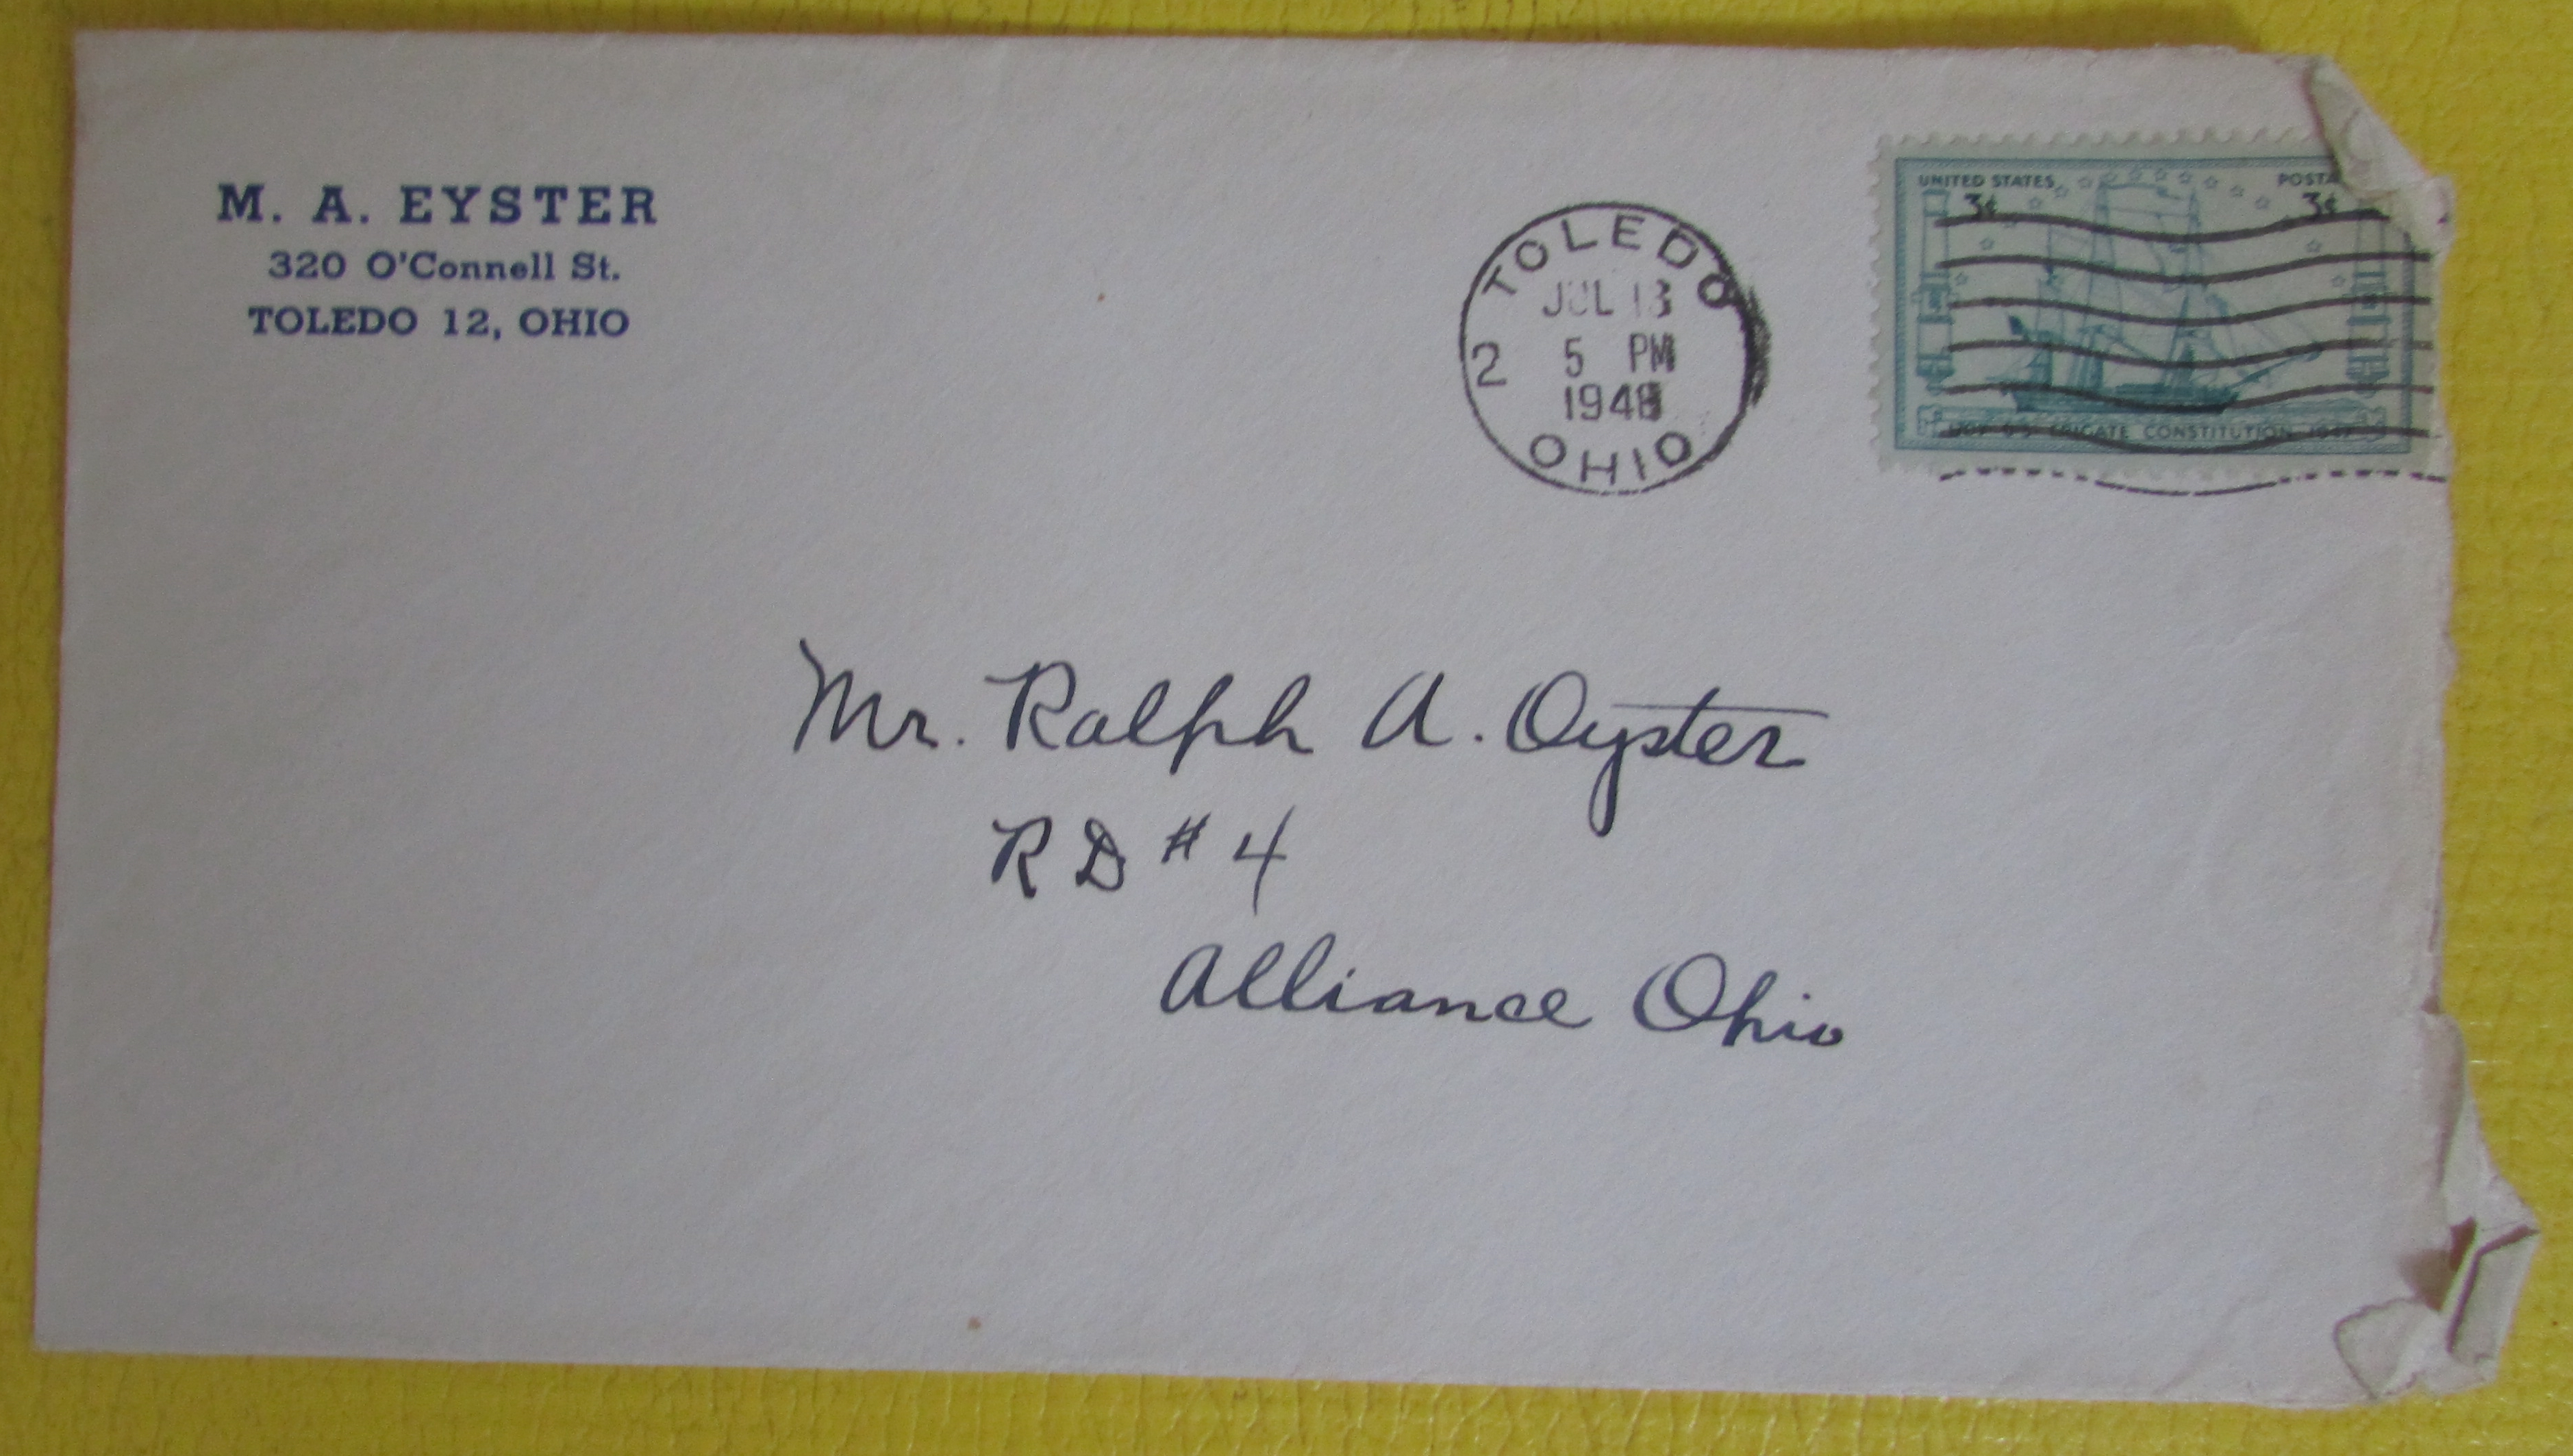 Envelope from 1948 letter